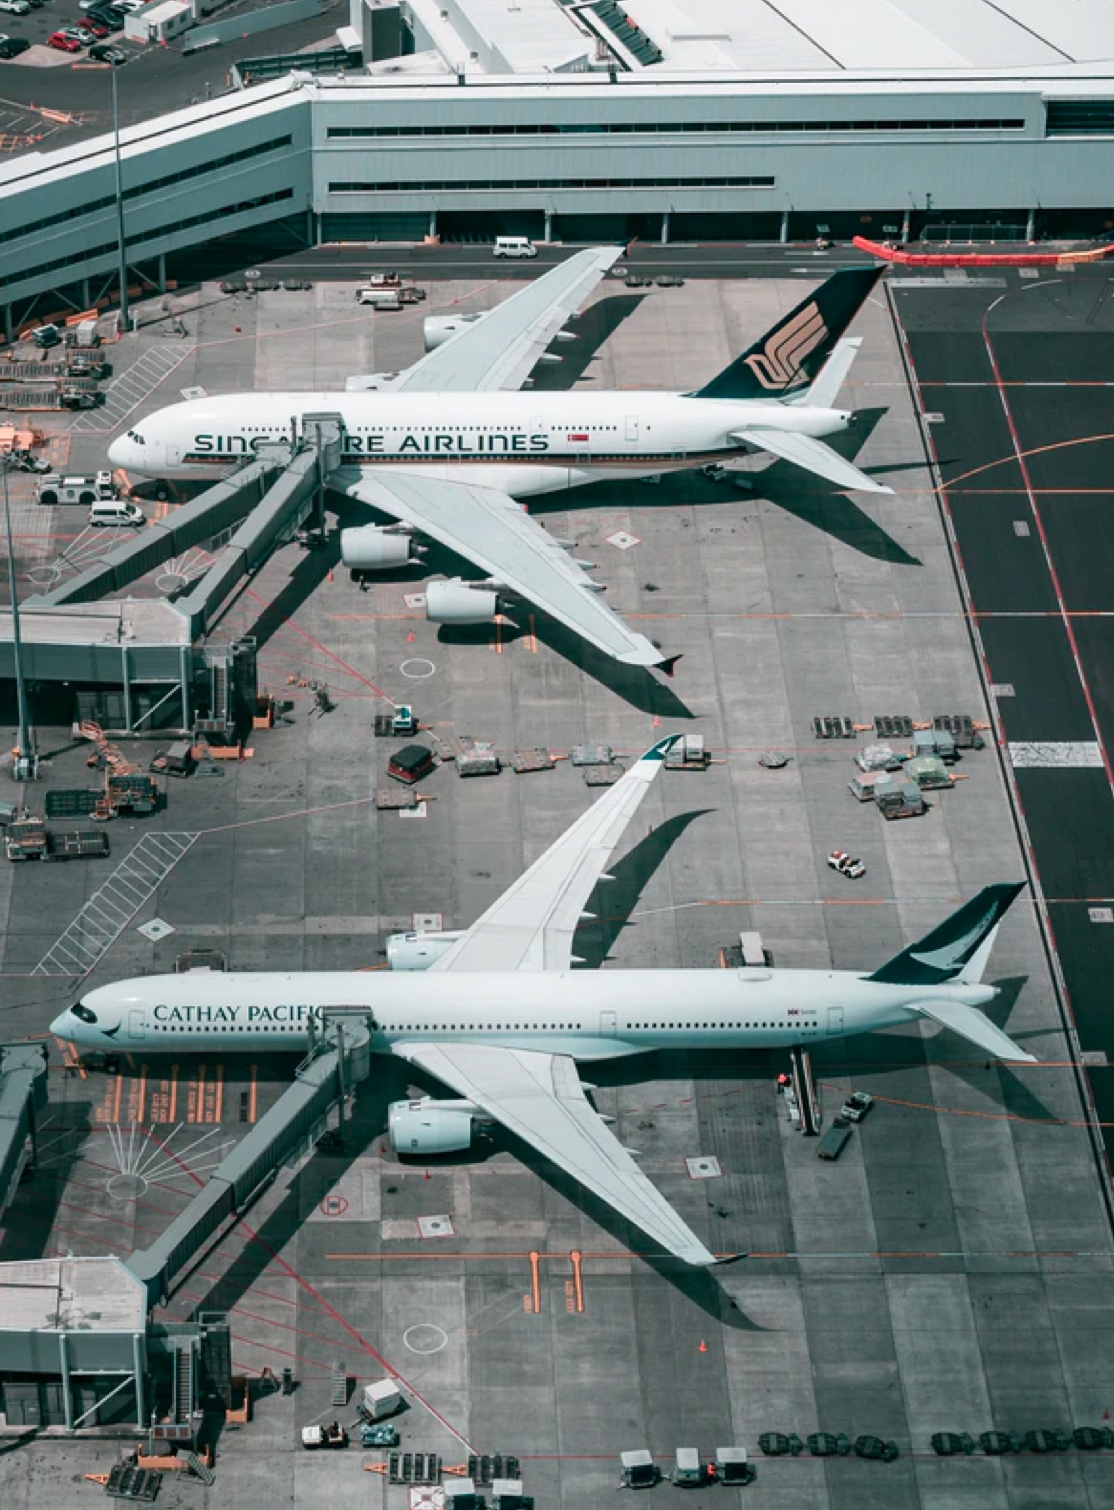 Big planes docked in an airport